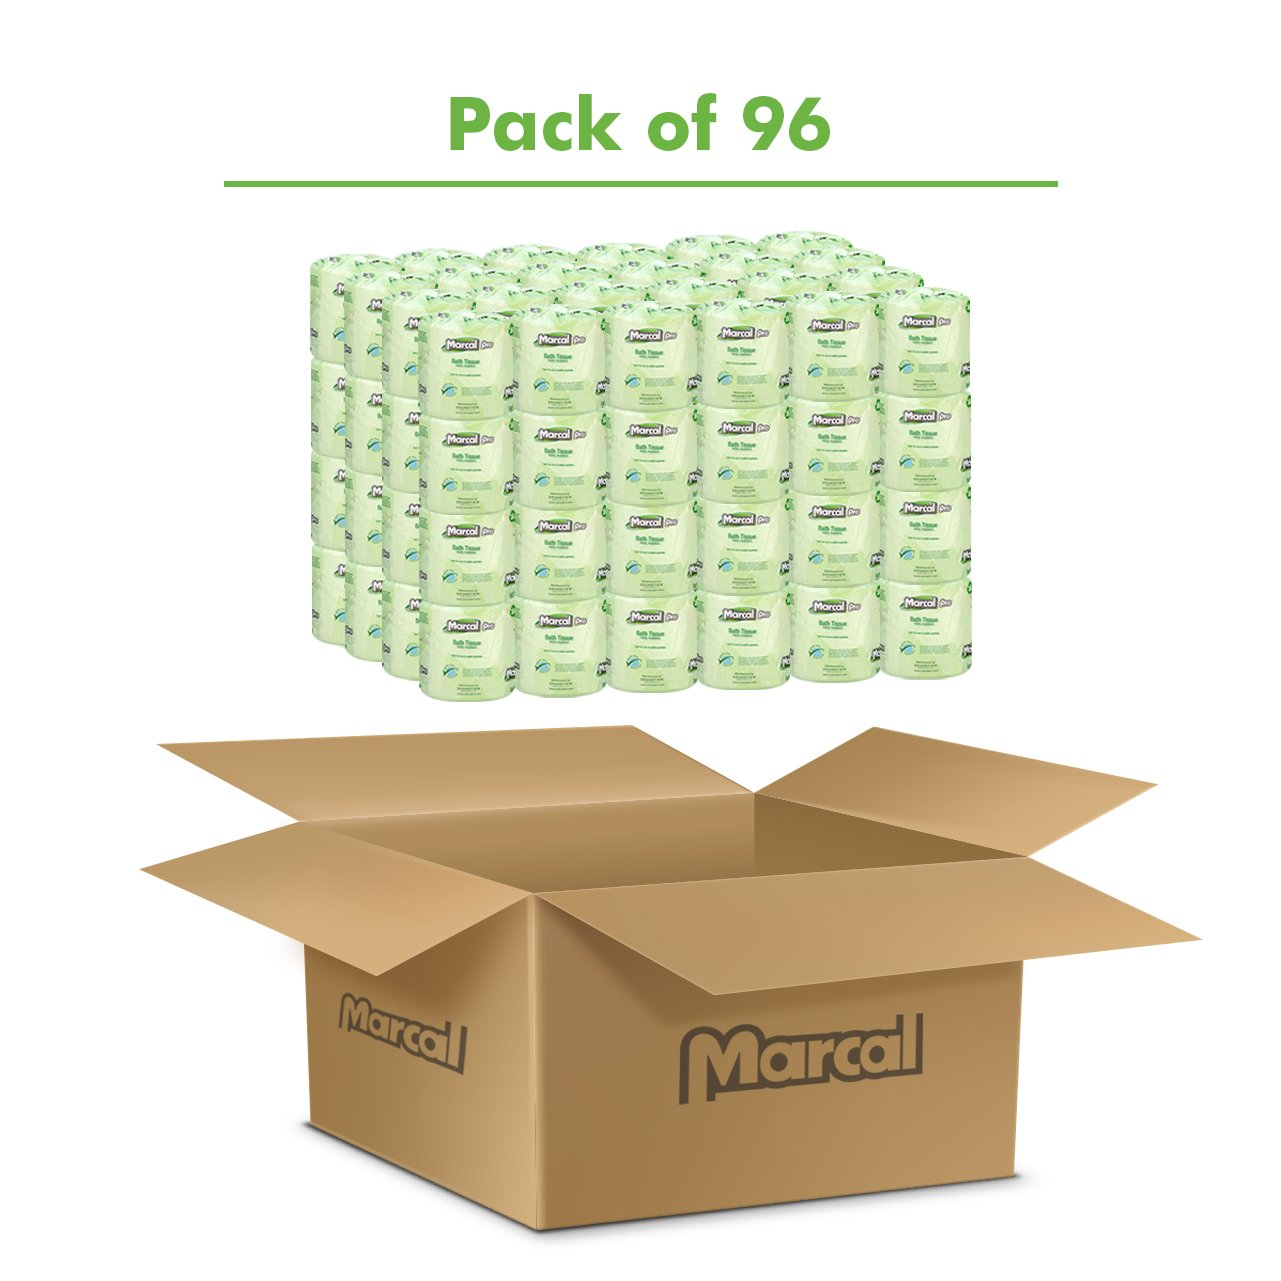 Marcal Pro Toilet Paper, 100% Recycled - 2-Ply, White, 500 Soft & Absorbent Sheets per Roll, 96 Rolls per Case - Green Seal Certified, Bulk Office Bath Tissue 05002 by Marcal (Image #2)